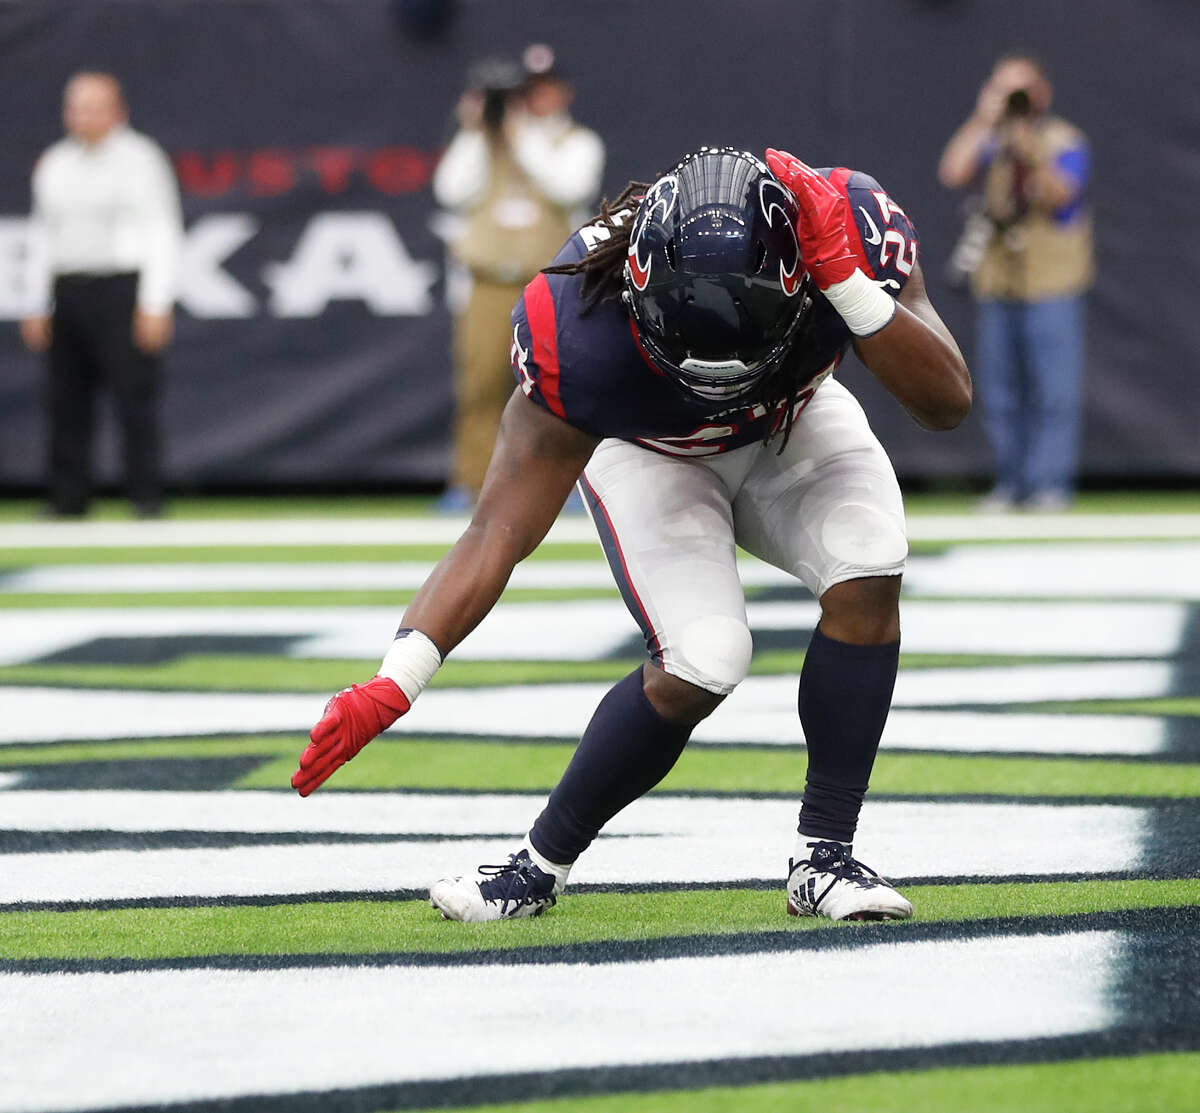 Running backs D'Onta Foreman (65) and Lamar Miller (61) combined for 126 yards and three touchdowns. Foreman scored the first two touchdowns of his career and suffered a ruptured Achilles tendon on his 34-yarder. Grade: A-minus